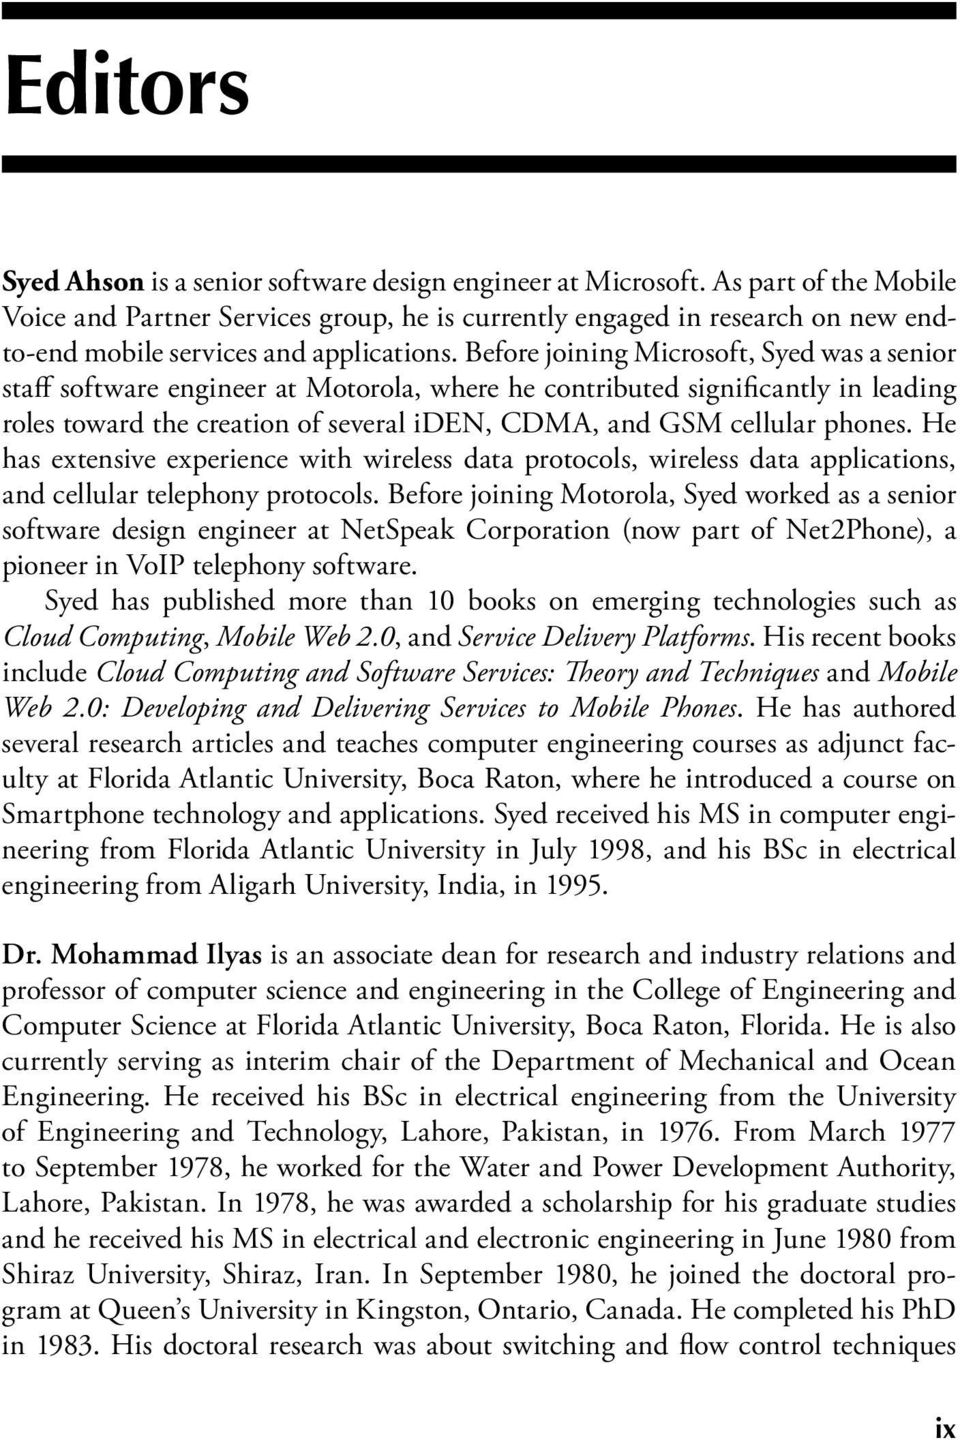 Before joining Microsoft, Syed was a senior staff software engineer at Motorola, where he contributed significantly in leading roles toward the creation of several iden, CDMA, and GSM cellular phones.